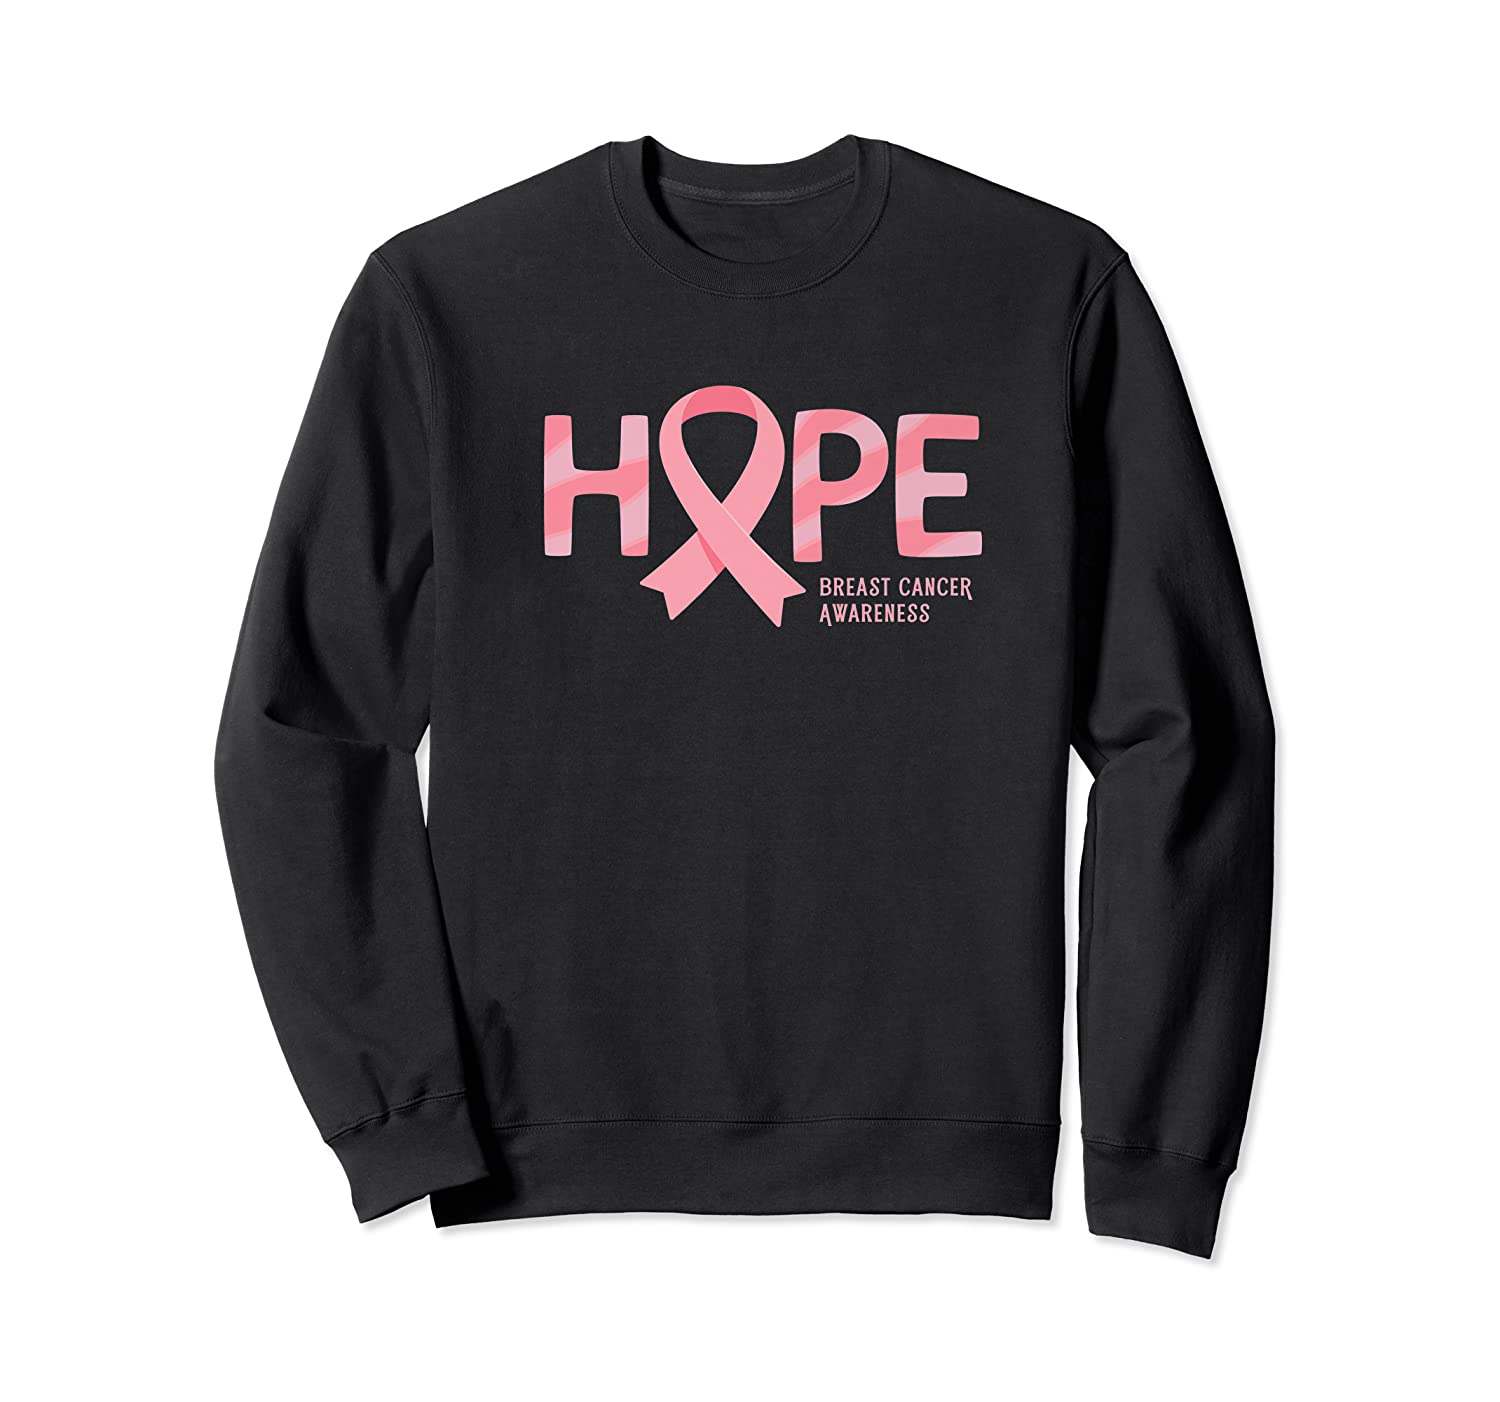 Have Hope Breast Cancer Awareness Month Support Team Premium T Shirt Crewneck Sweater